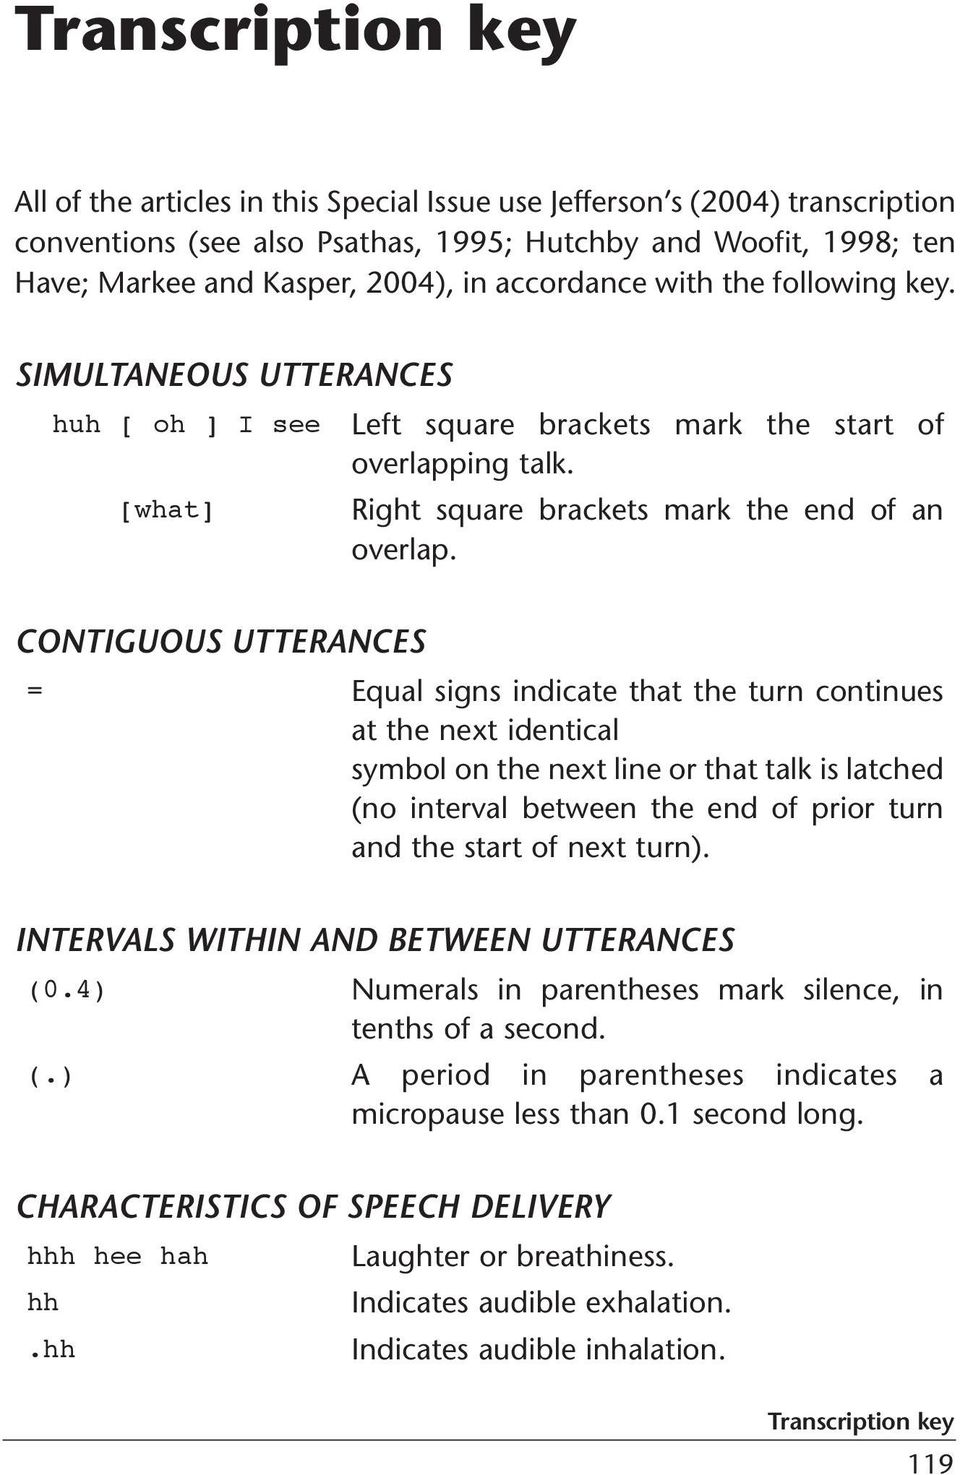 CONTIGUOUS UTTERANCES = Equal signs indicate that the turn continues at the next identical symbol on the next line or that talk is latched (no interval between the end of prior turn and the start of